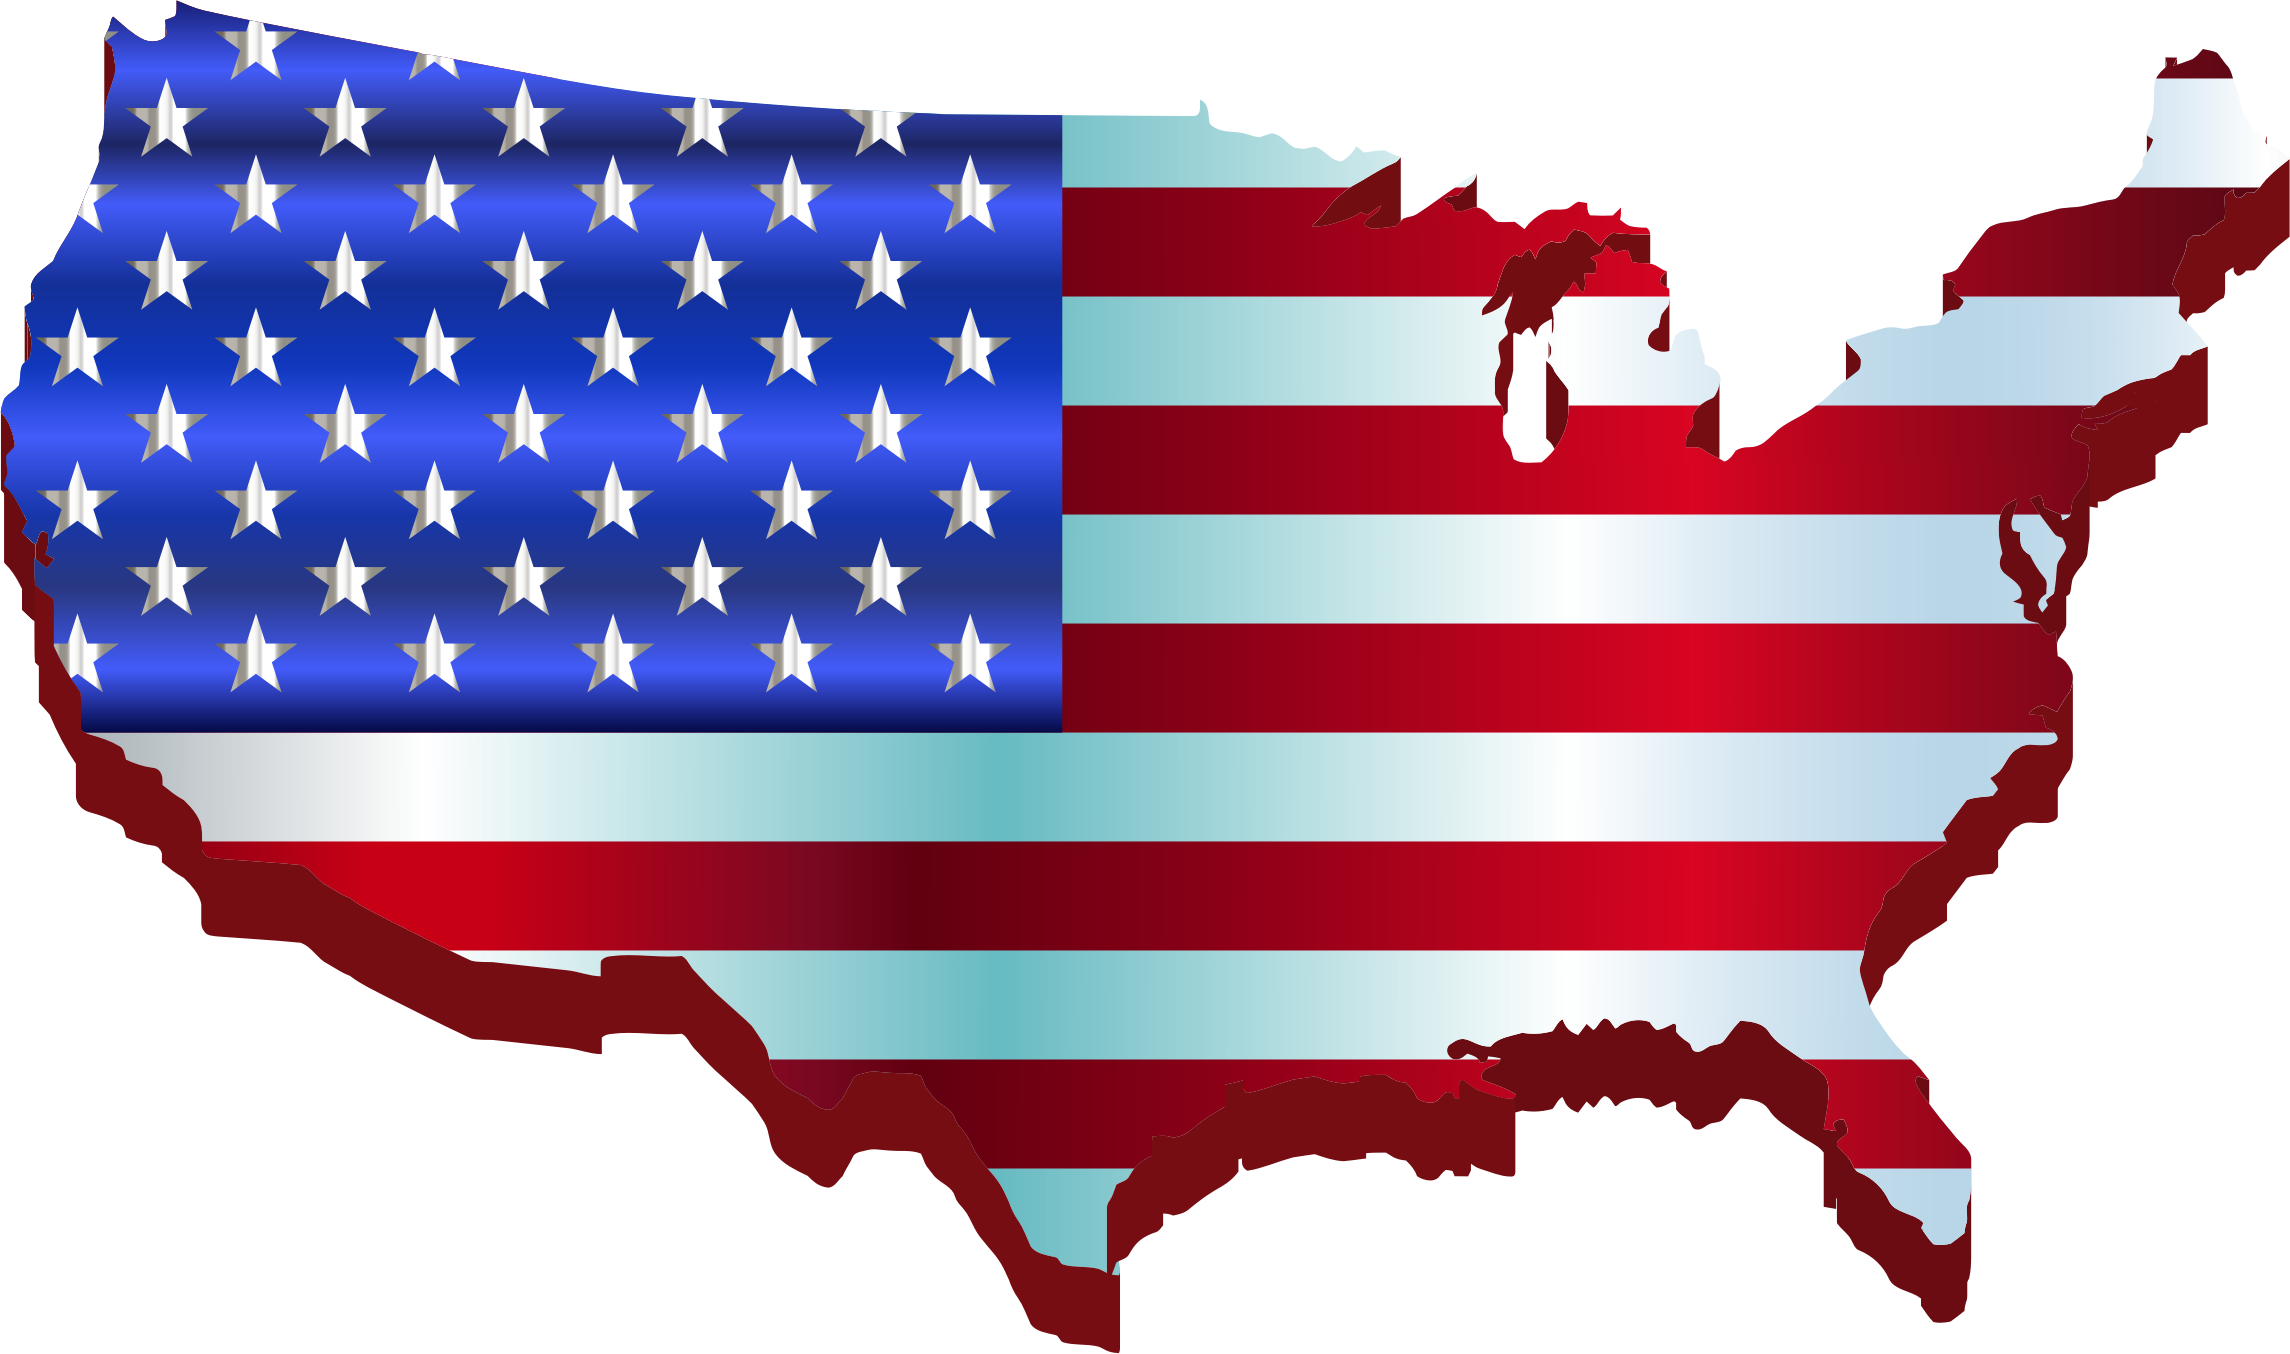 Clipart maps of states picture freeuse download Clipart 3D America Map Flag Enhanced Within Of With - arabcooking.me picture freeuse download